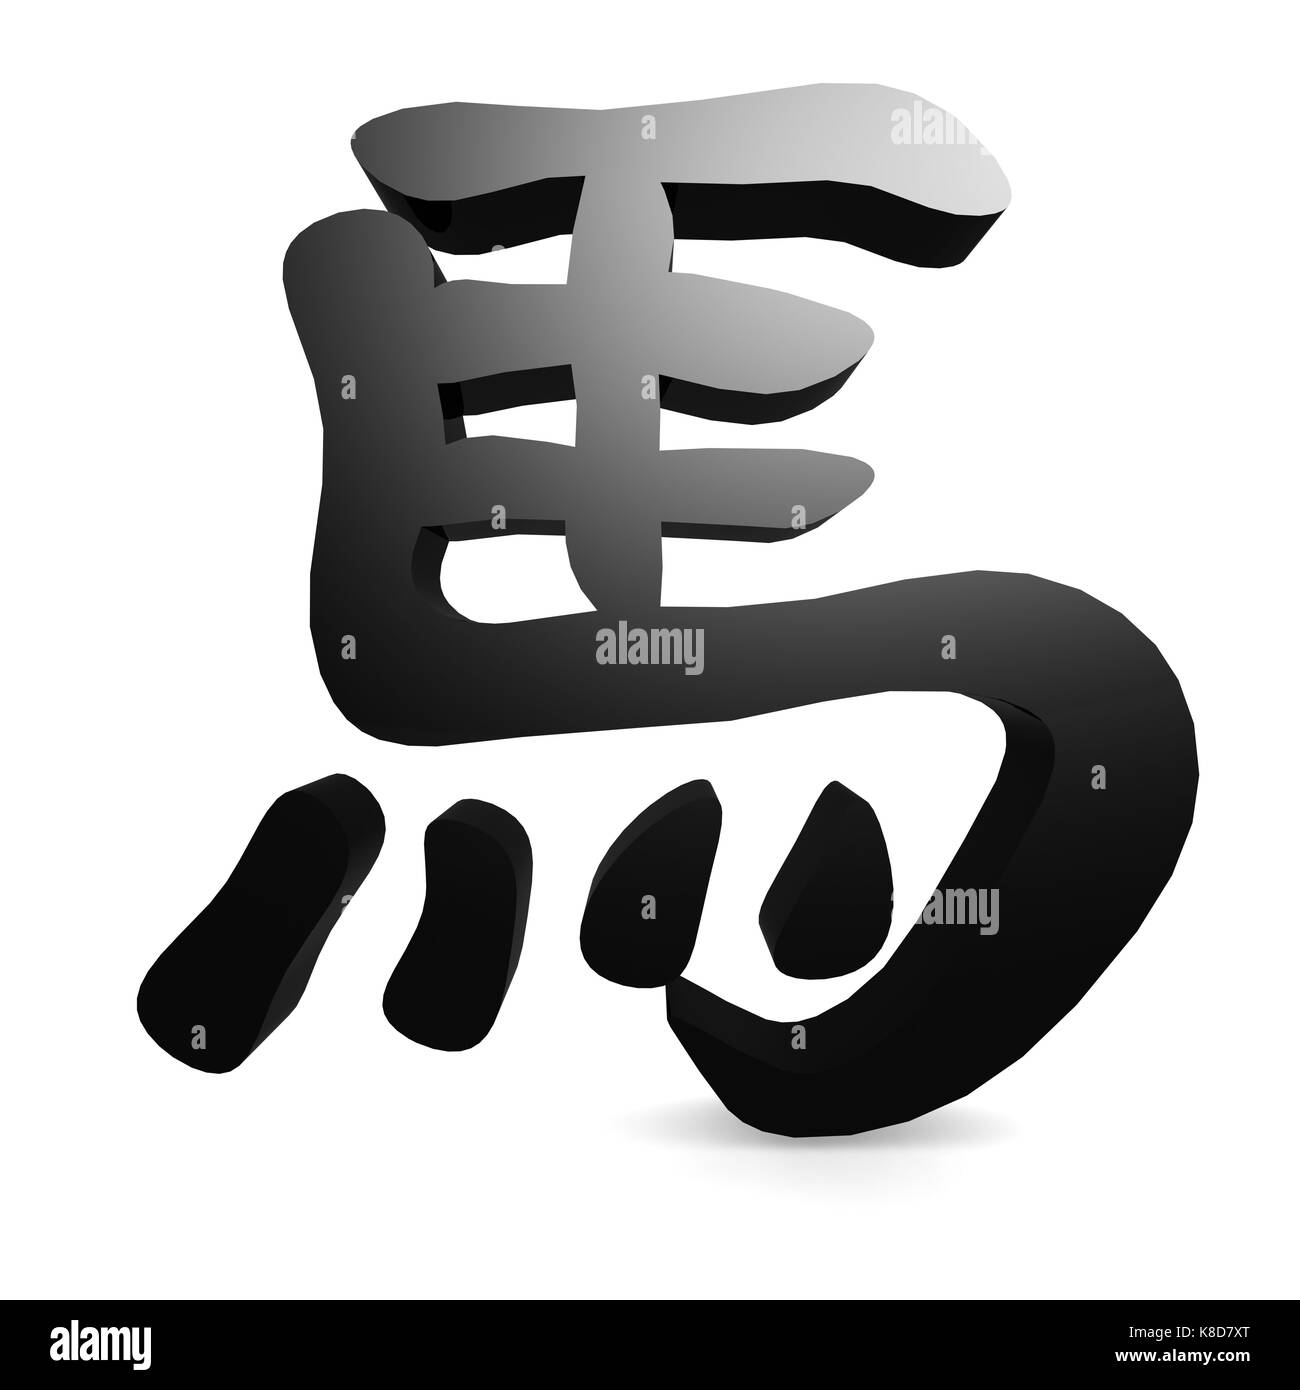 Paint horse black and white stock photos images alamy horse in chinese stock image biocorpaavc